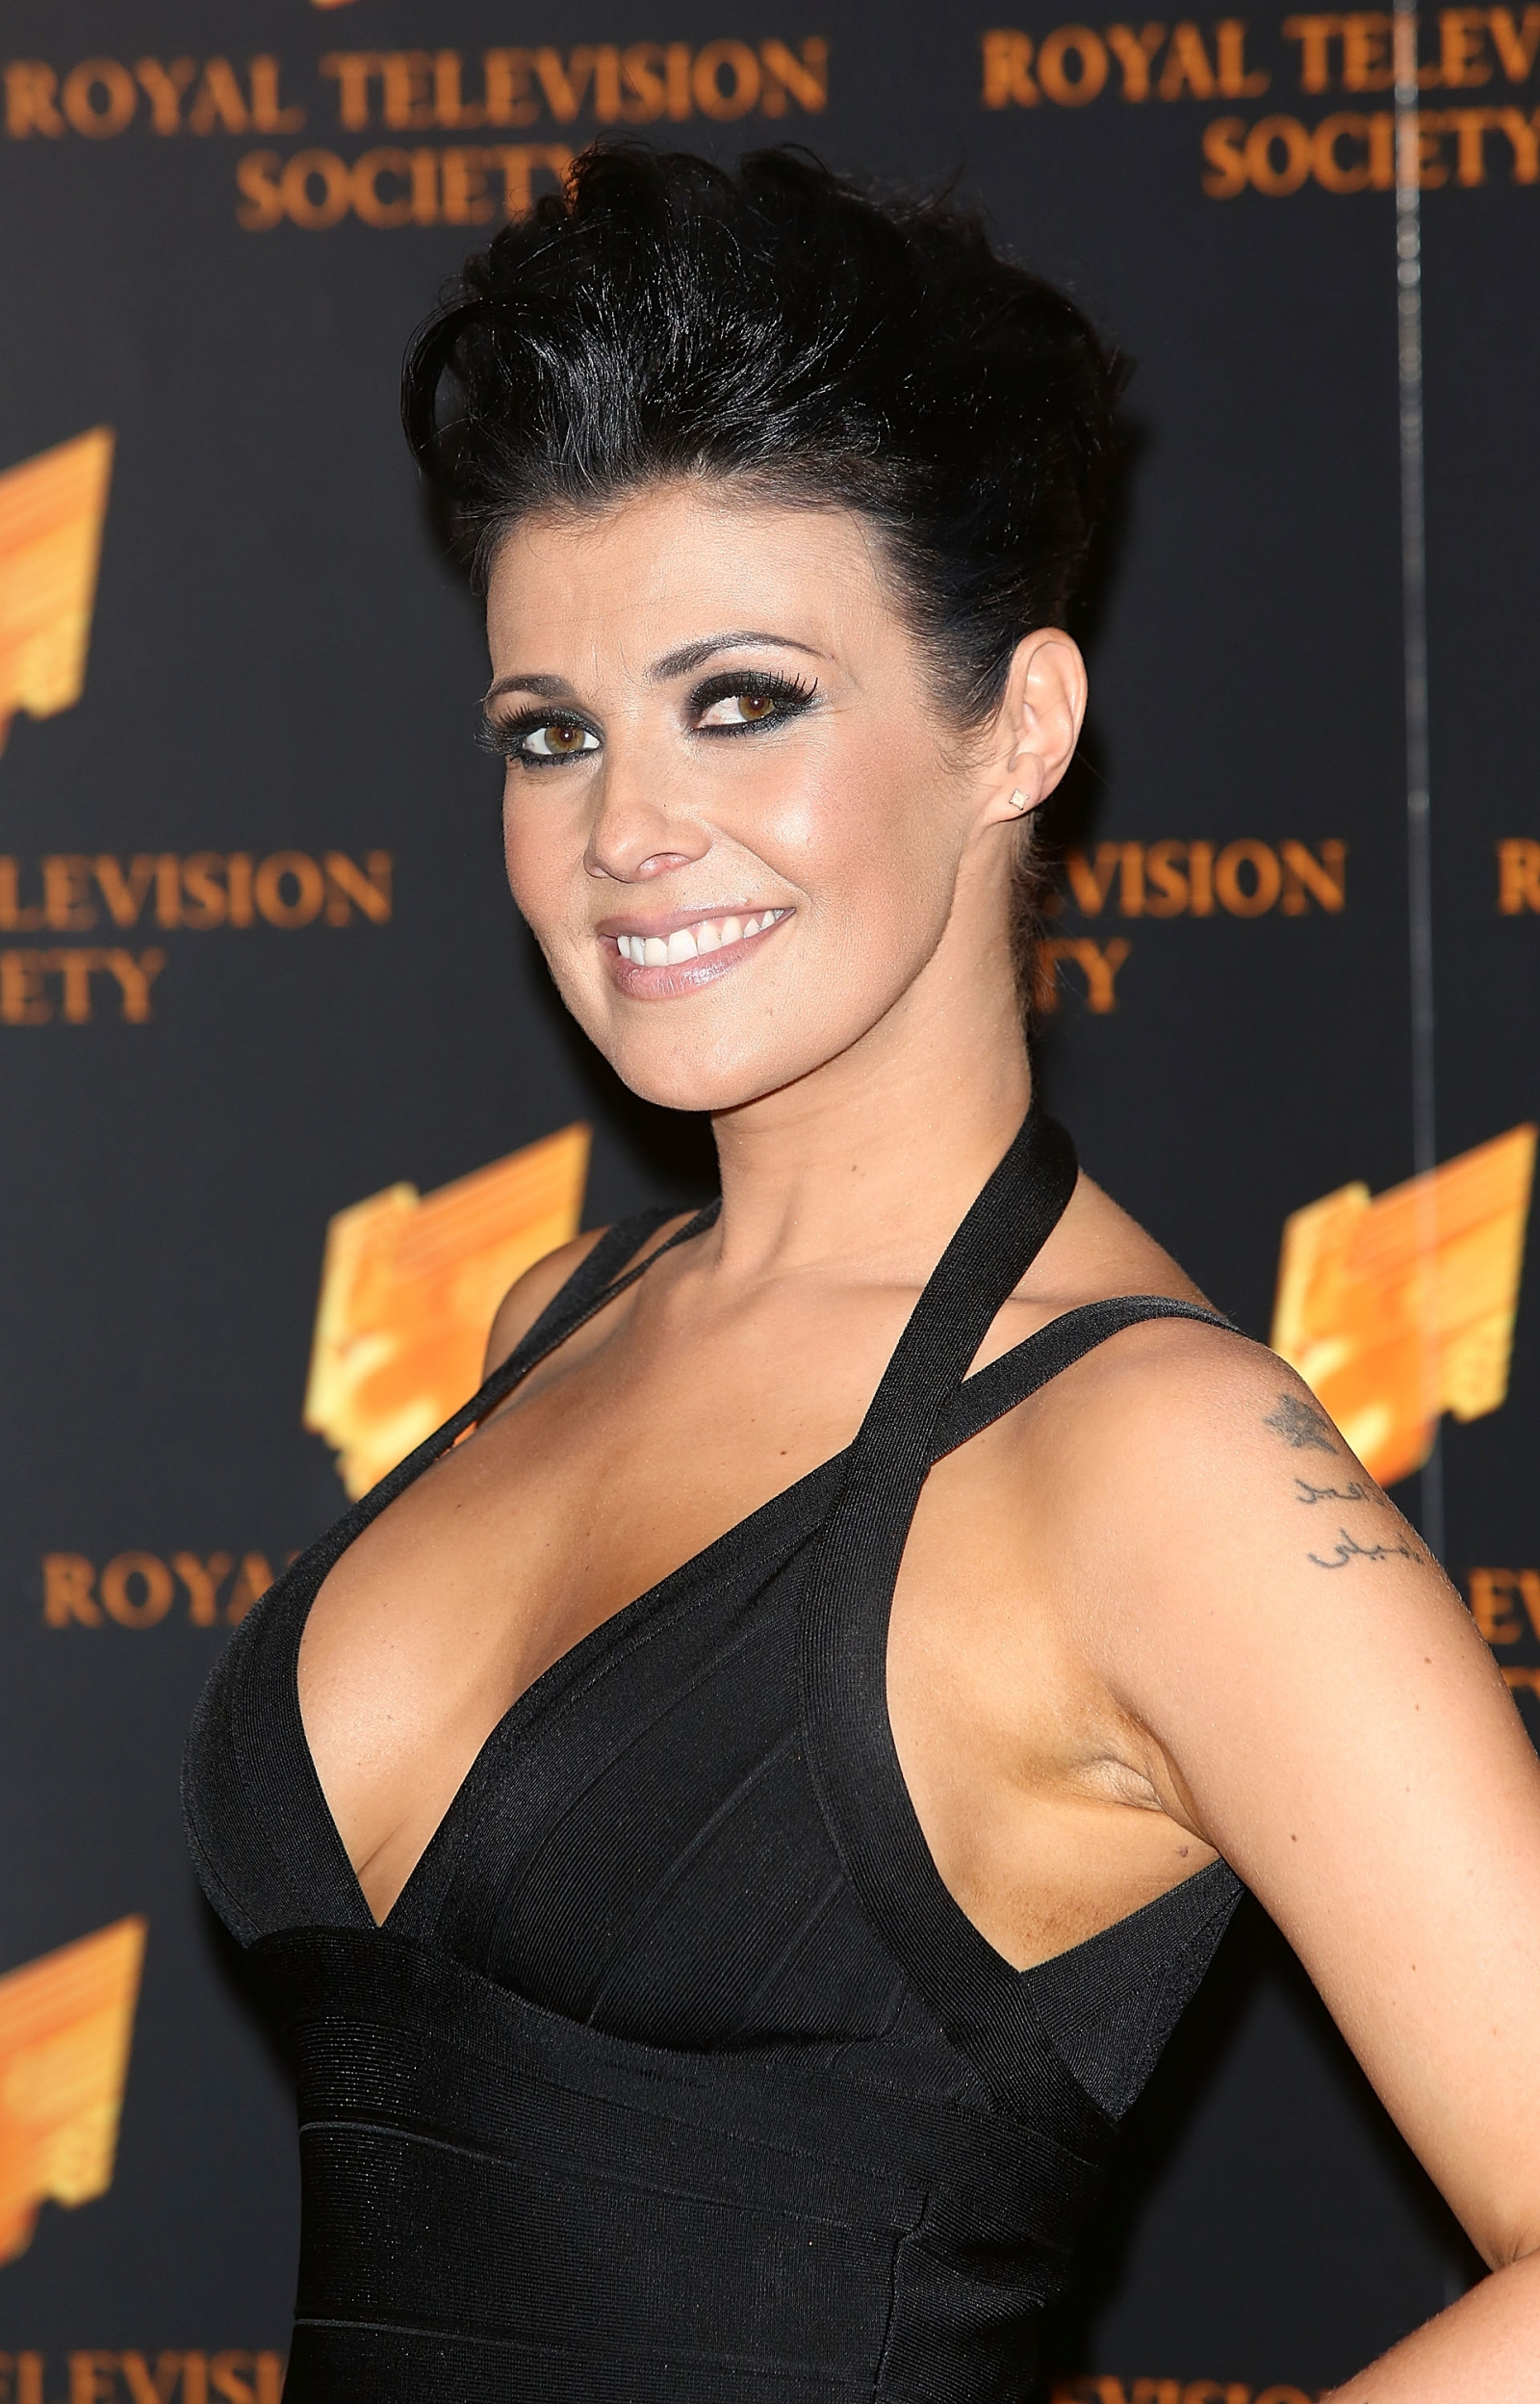 photo Kym Marsh (born 1976)